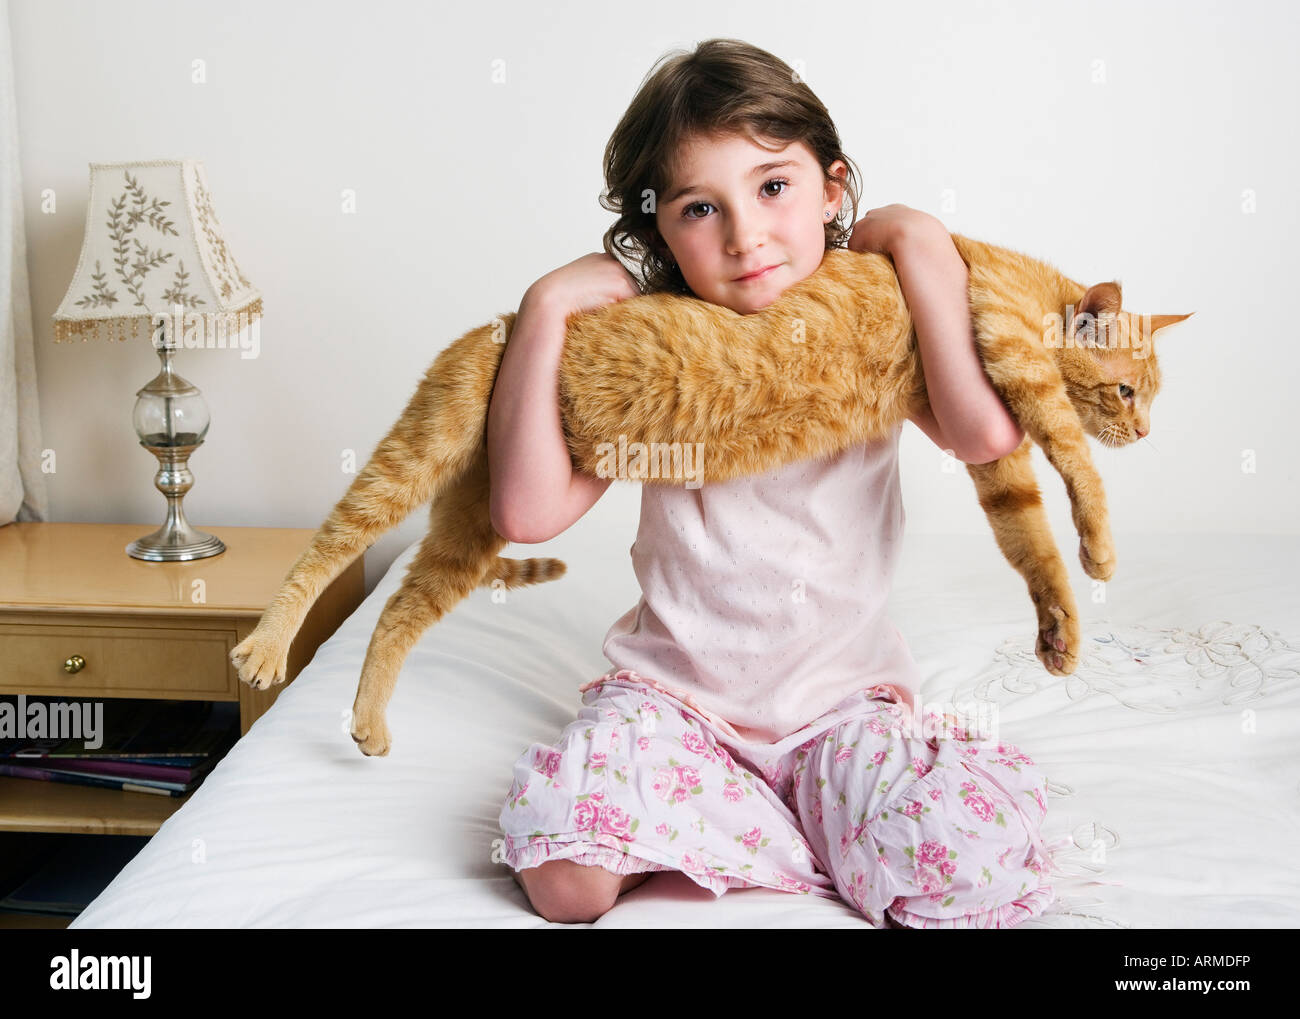 girl holding cat in arms - Stock Image